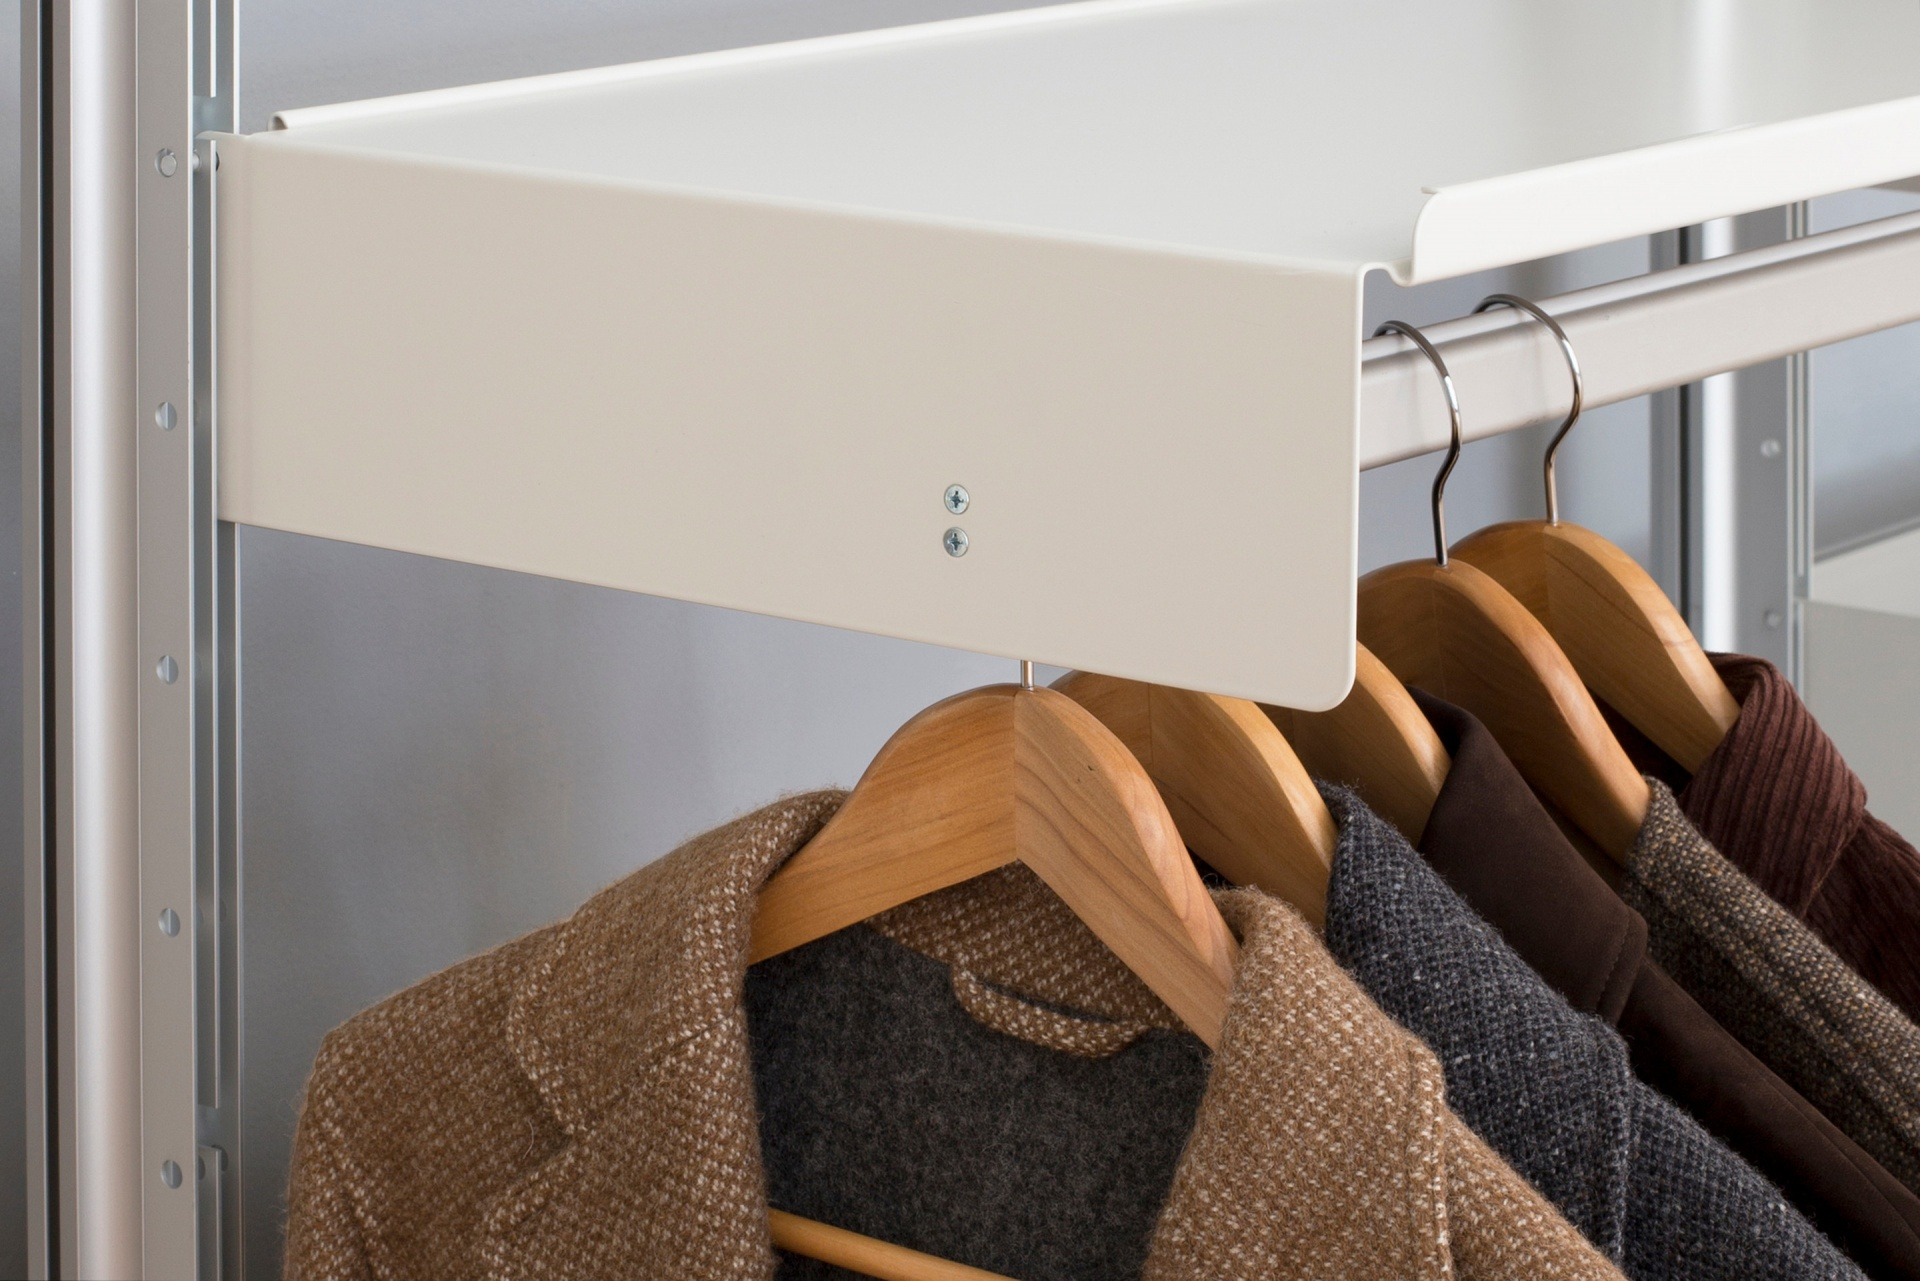 The shelf with hanging rail works well in the wardrobe or hallway